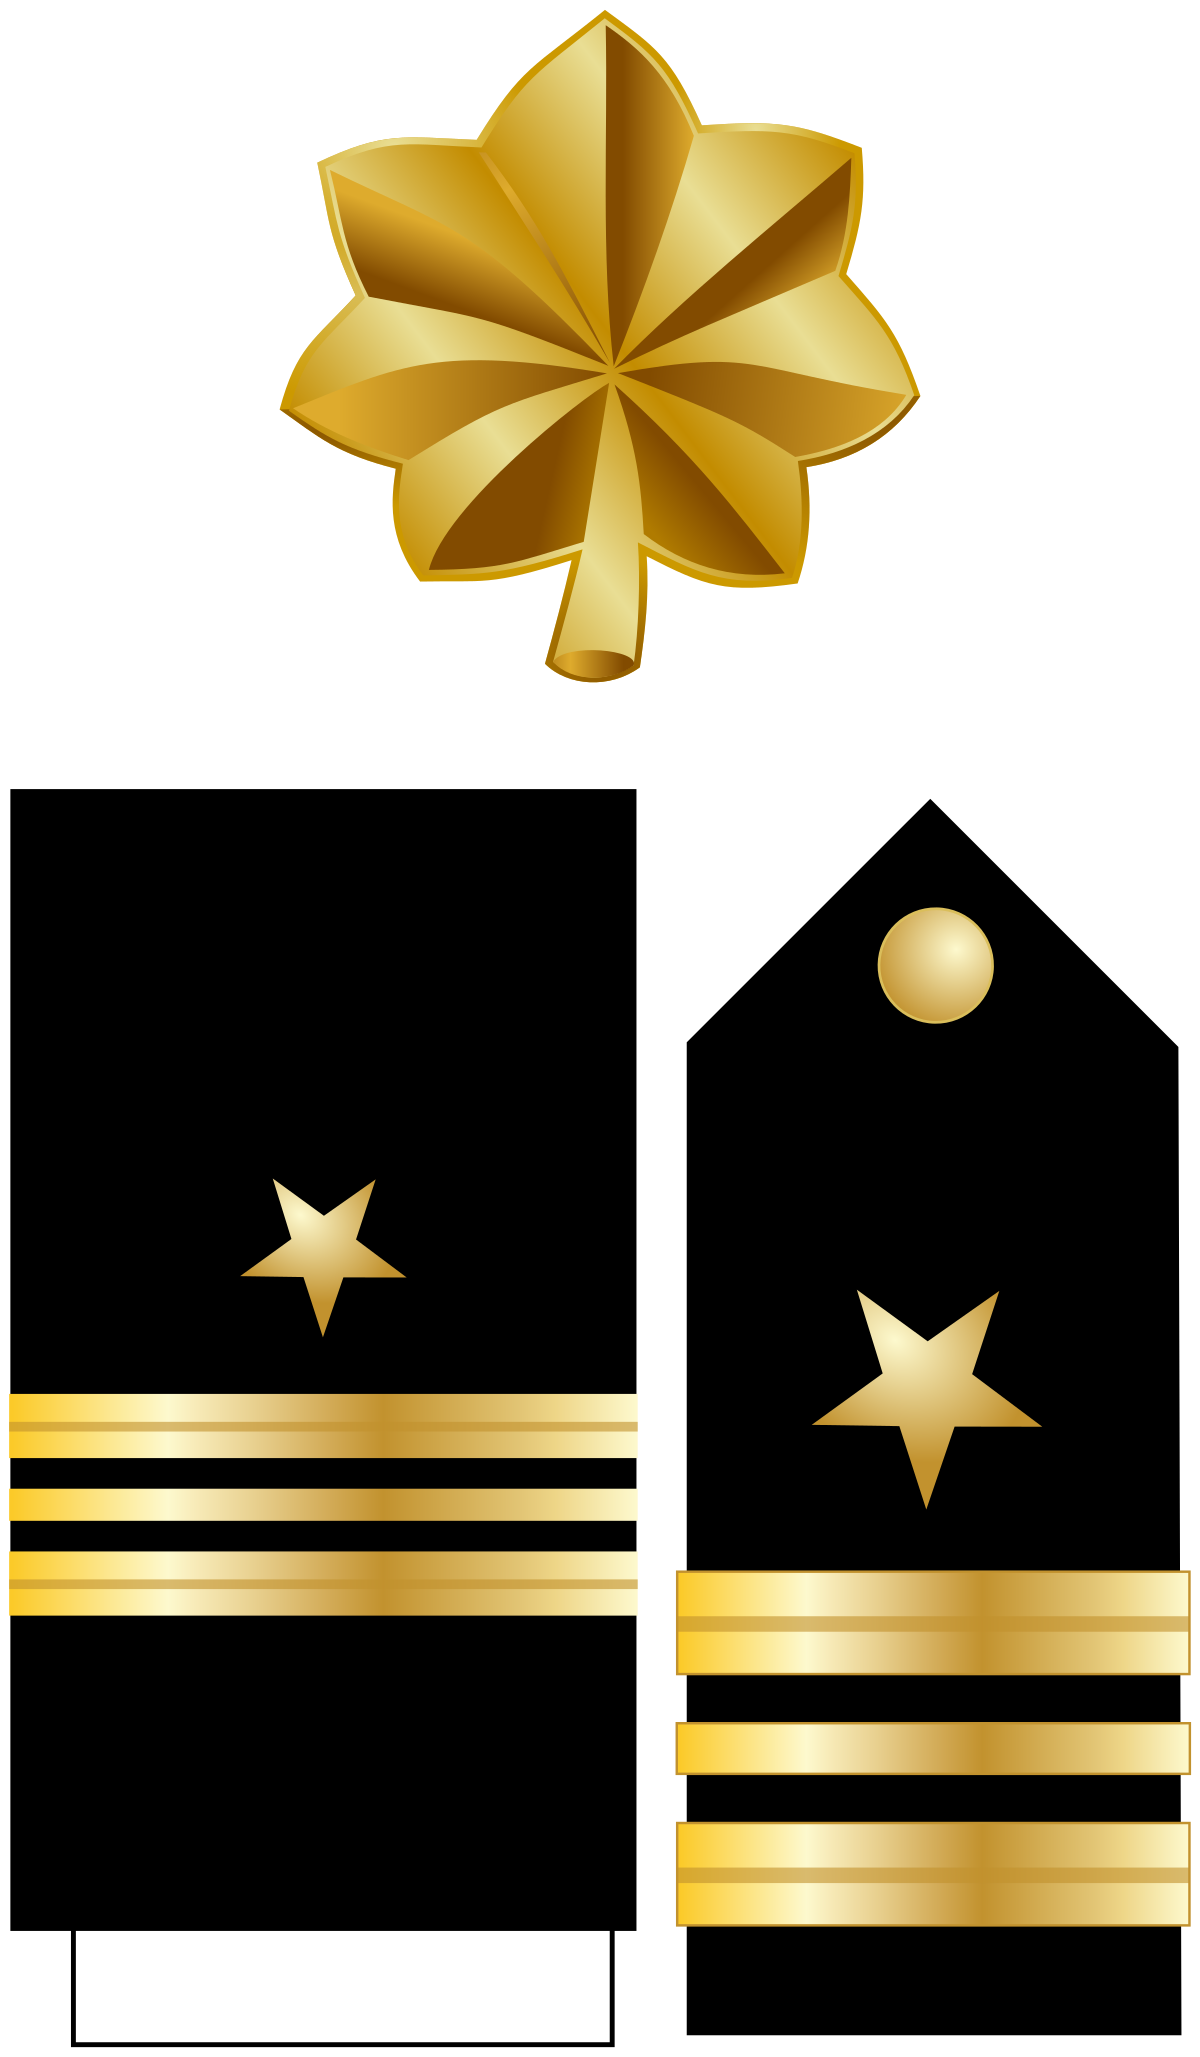 Cwo5 clipart vector freeuse download Lieutenant commander - Wikipedia vector freeuse download